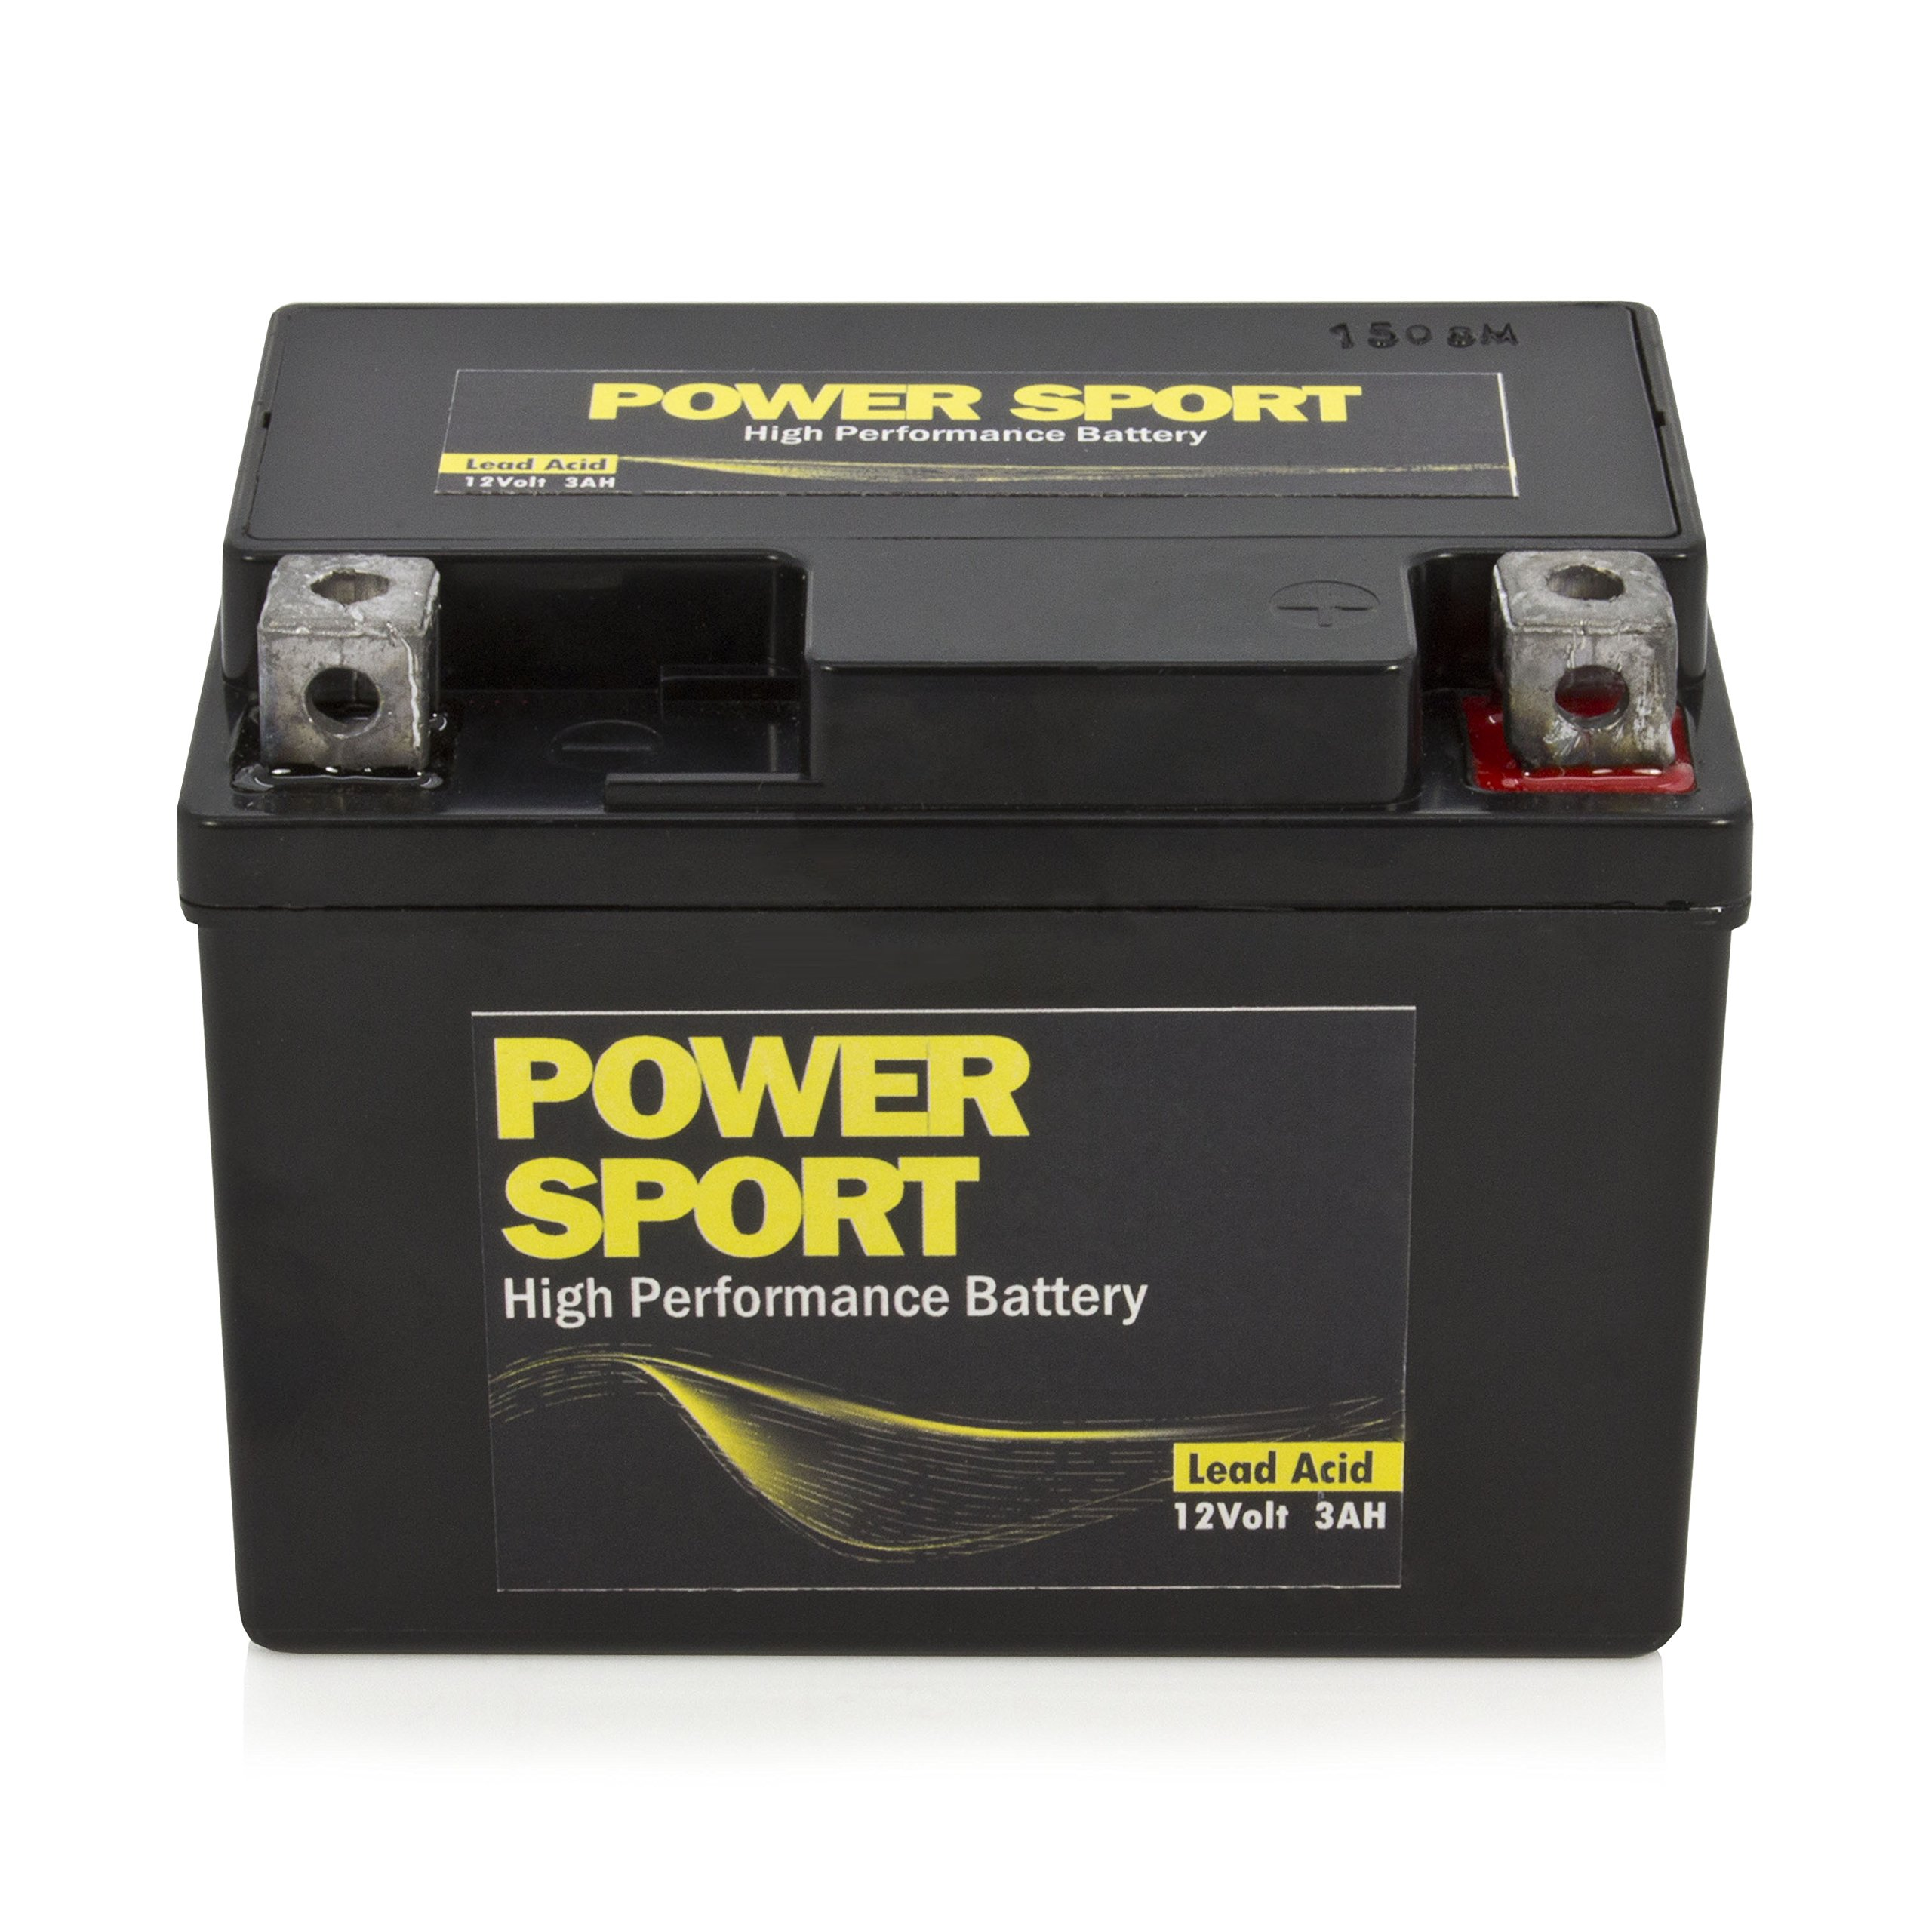 ExpertPower ETX4L-BS Powersport Replacement (YTX4L-BS, YT4L, YTX4L, YT4L-BS, GTX4L-BS, GT4L-BS, GTX4L, GT4L WPX4L-BS Sealed AGM For Arctic Cat, Polaris, Brp) by ExpertPower (Image #1)